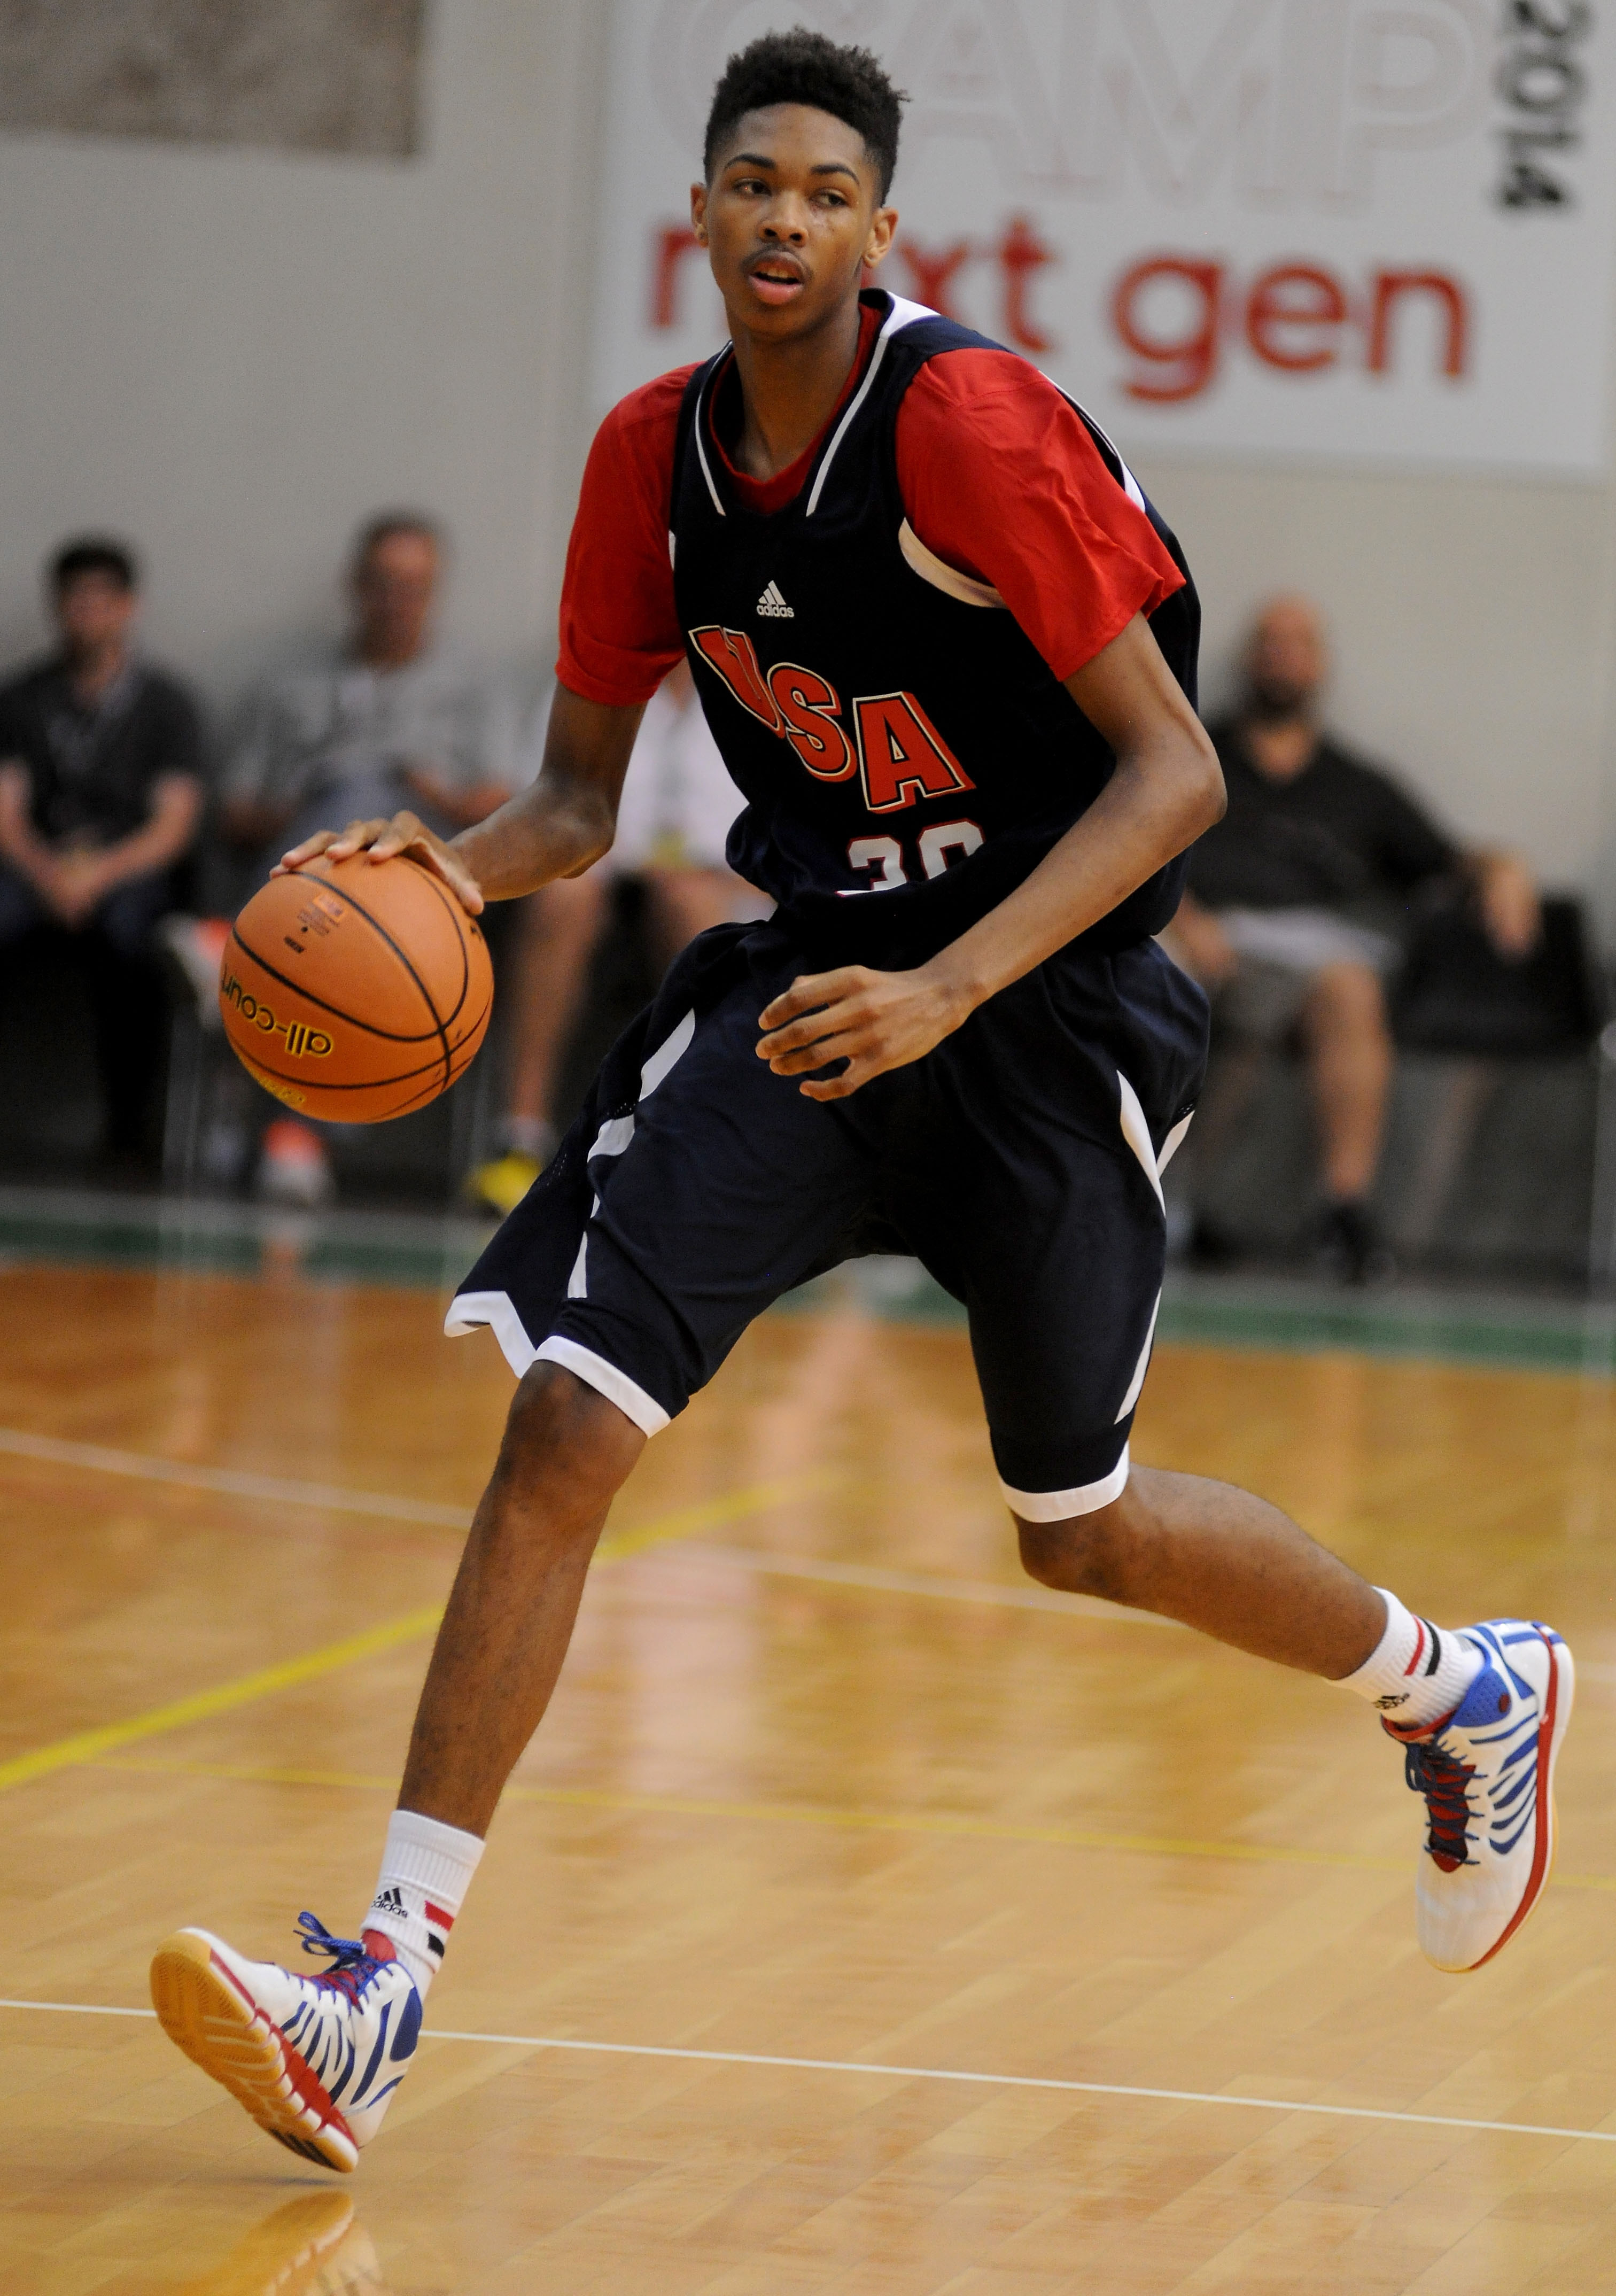 Kinston's Brandon Ingram is one of the top players at this year's High School OT Holiday Invitational. / adidas